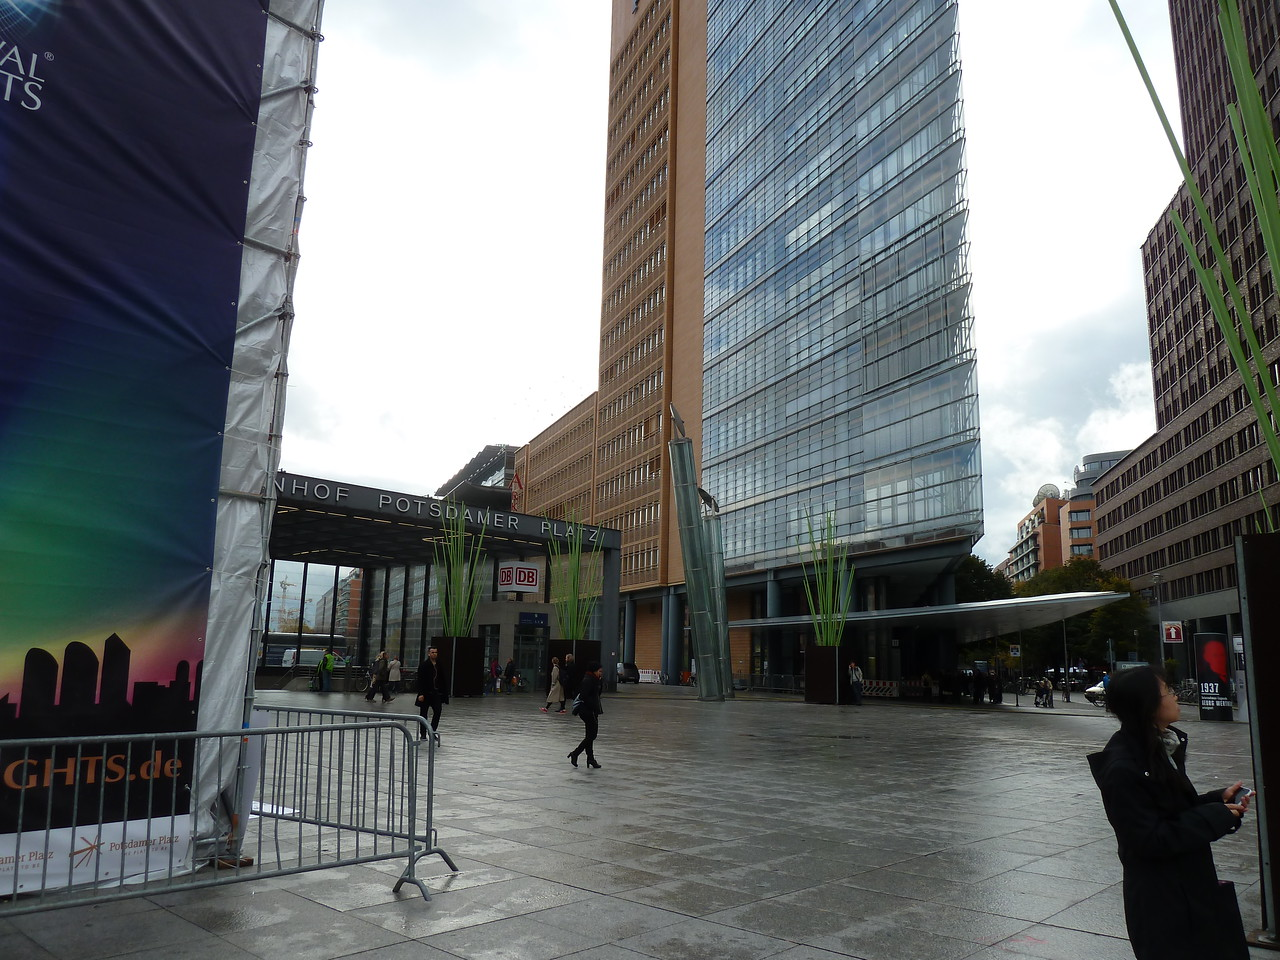 The very modern Potsdamer Platz.